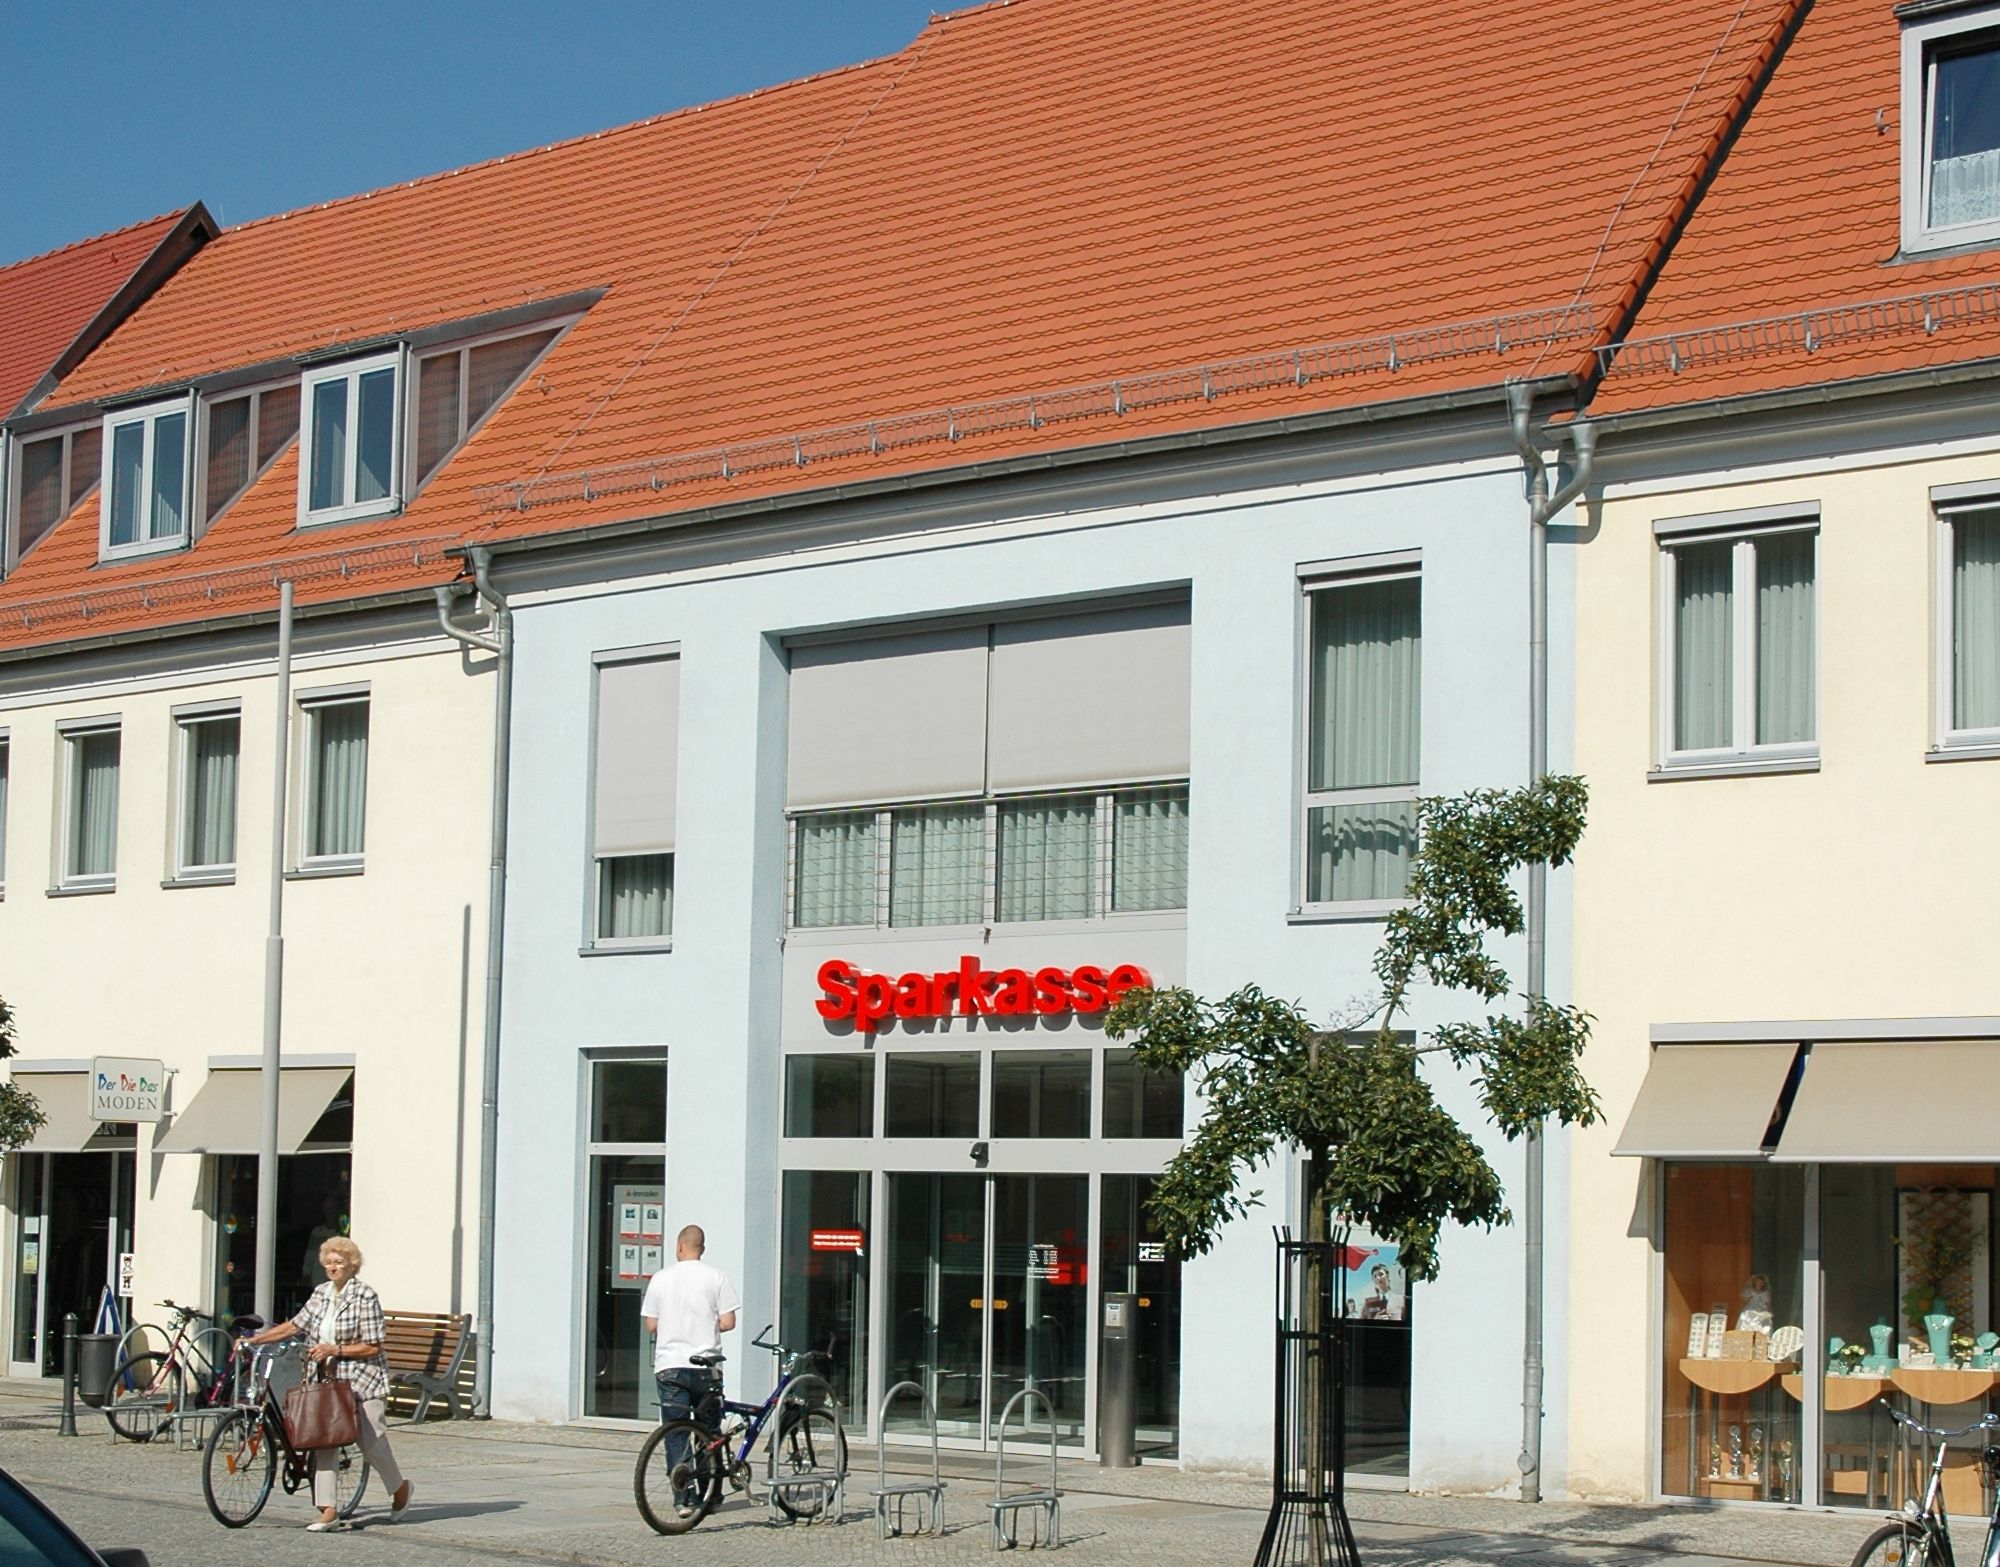 Sparkasse Versicherungs Center Herzberg